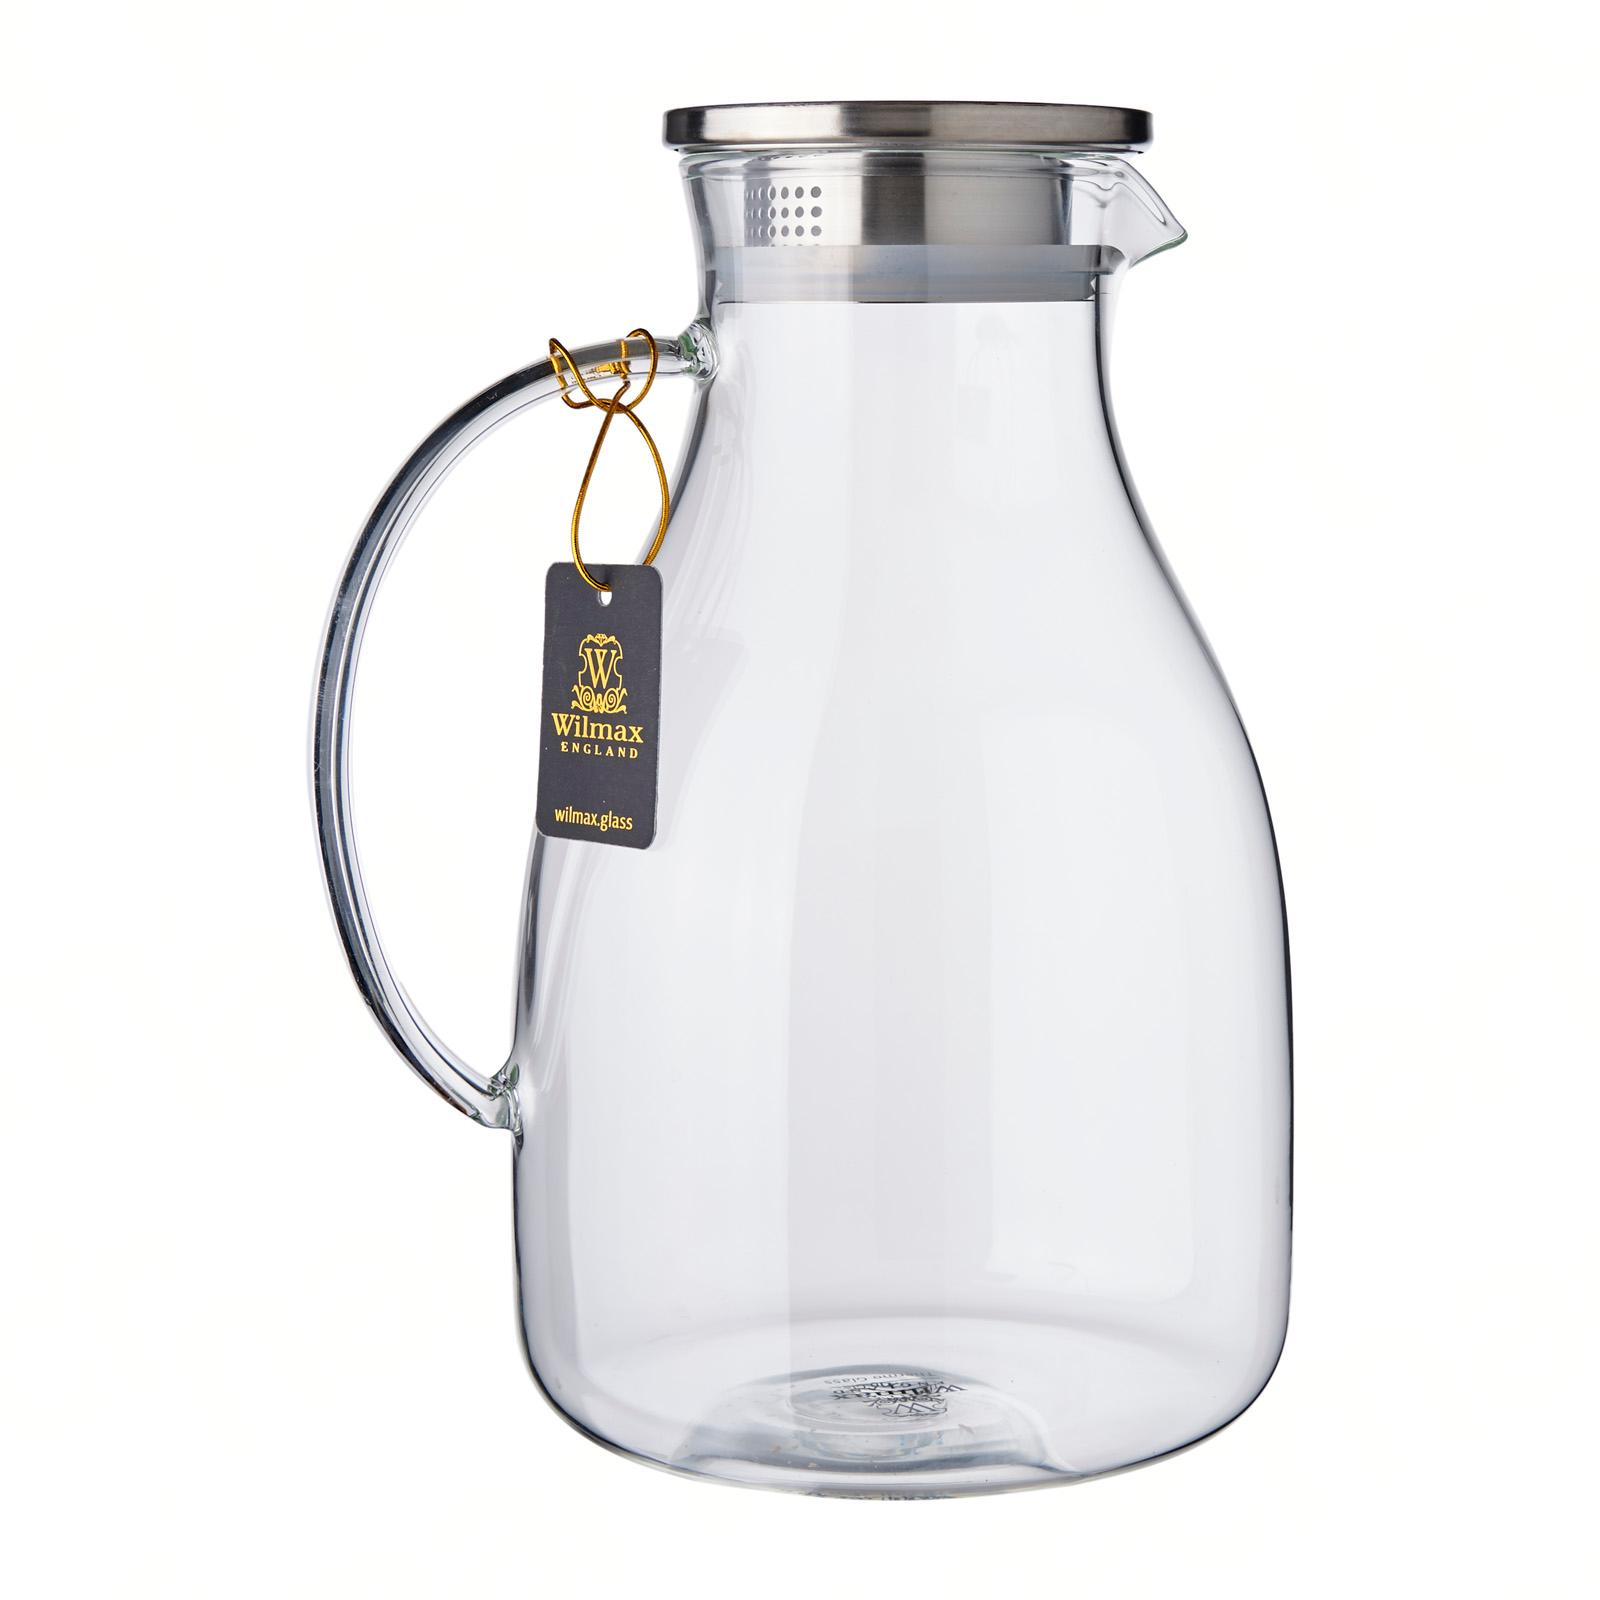 Wilmax England Thermo Glass Jug 2500 ML